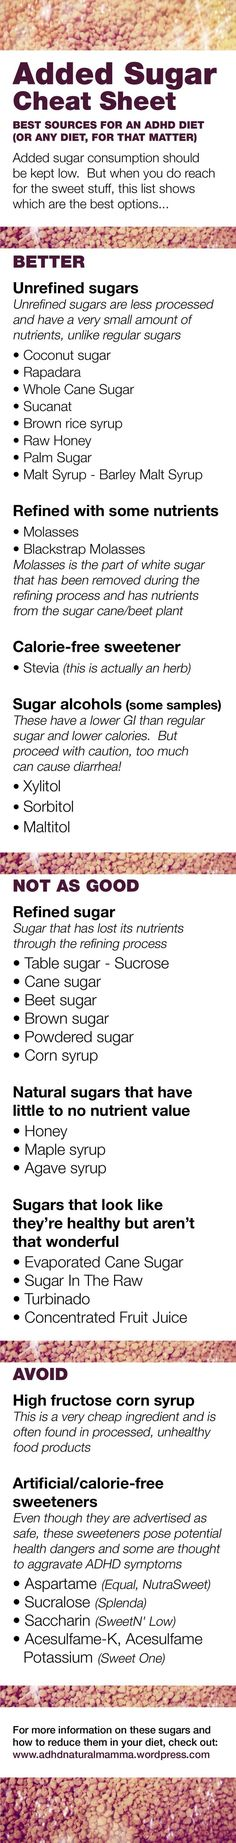 Added sugar cheat sheet - which added sugars are more healthy for an ADHD diet, or any healthy diet for that matter